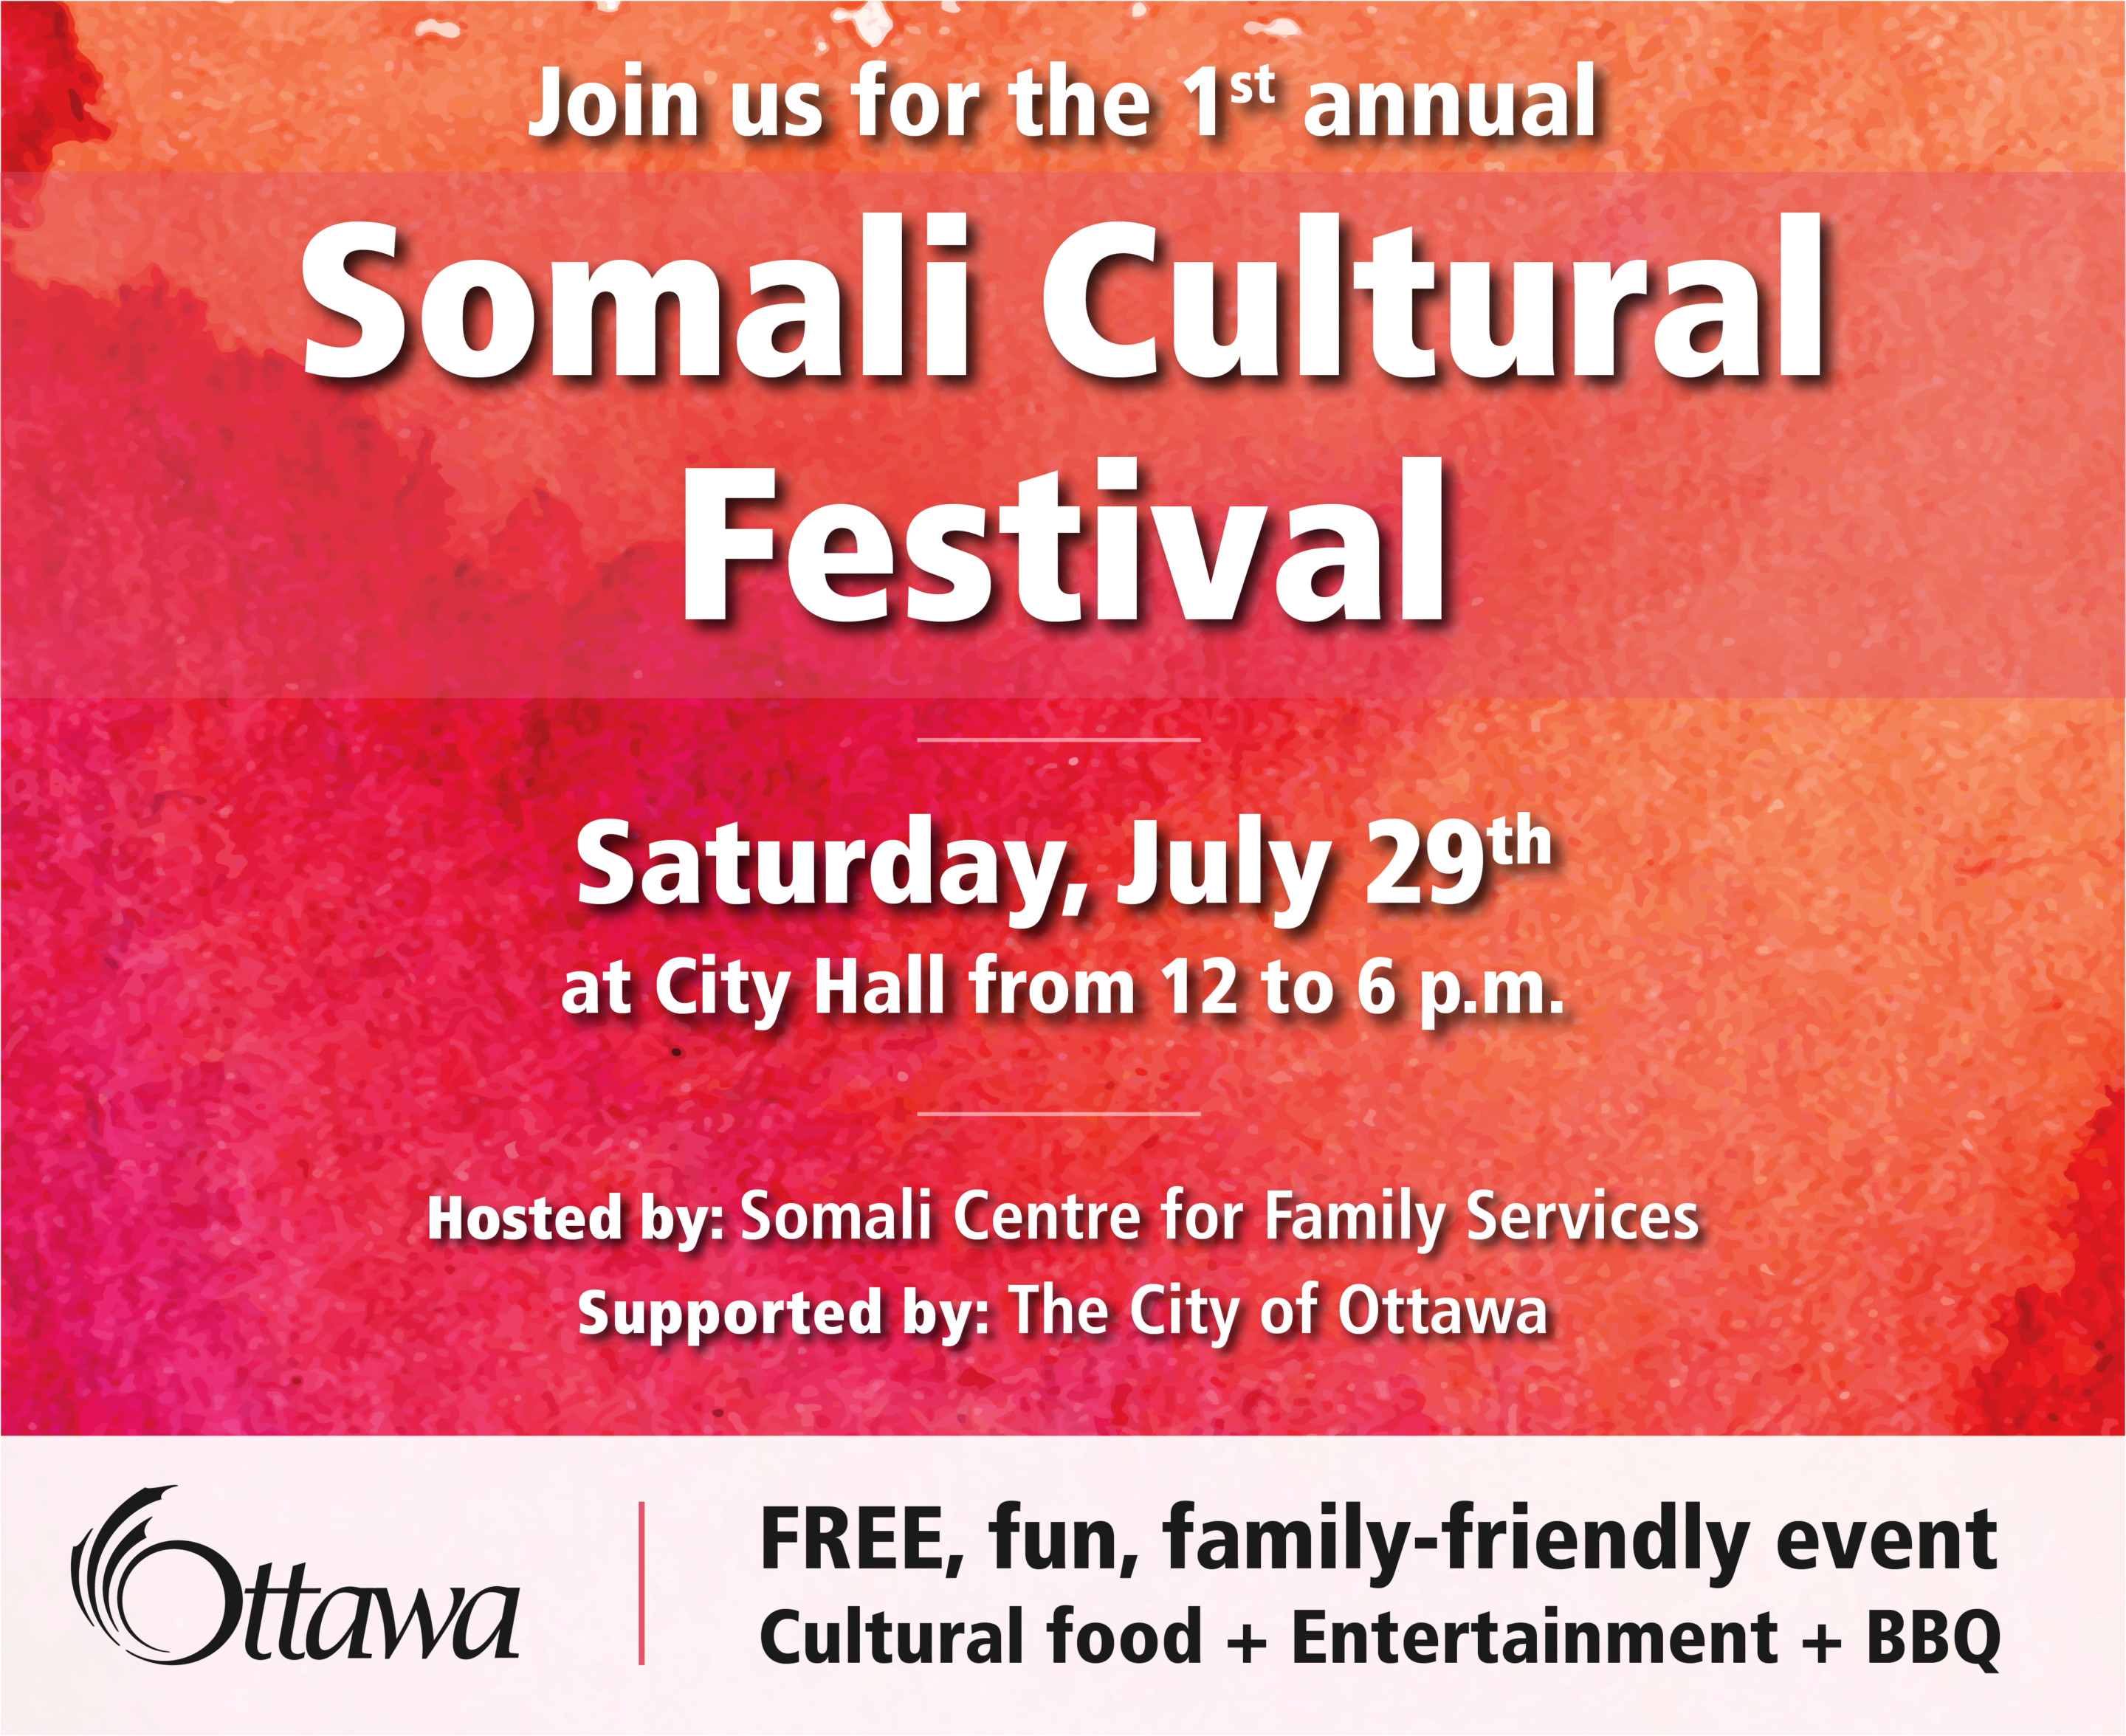 First Annual Somali Cultural Festival to take place in Ottawa - Jim